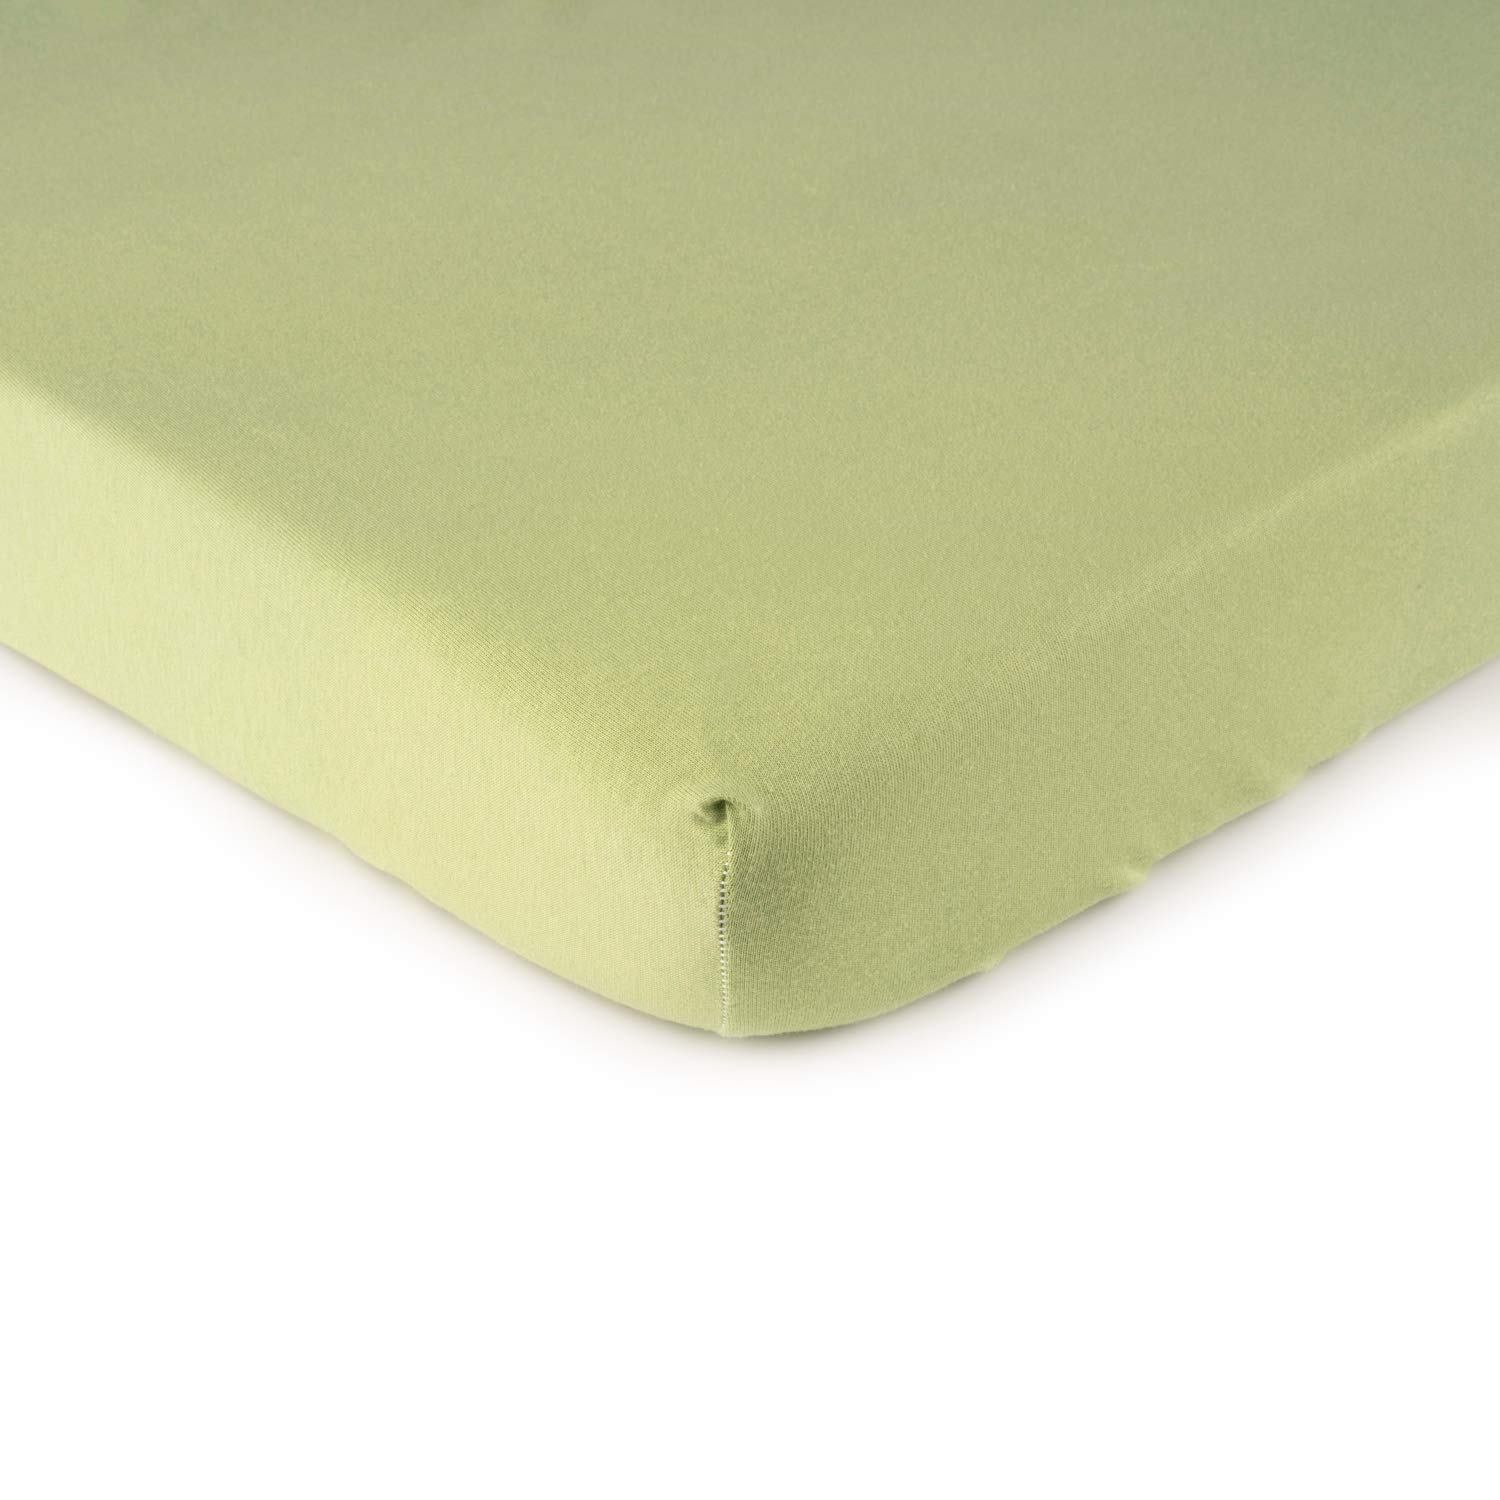 SheetWorld Fitted Cradle Sheet - Solid Sage Jersey Knit - Made In USA by SHEETWORLD.COM